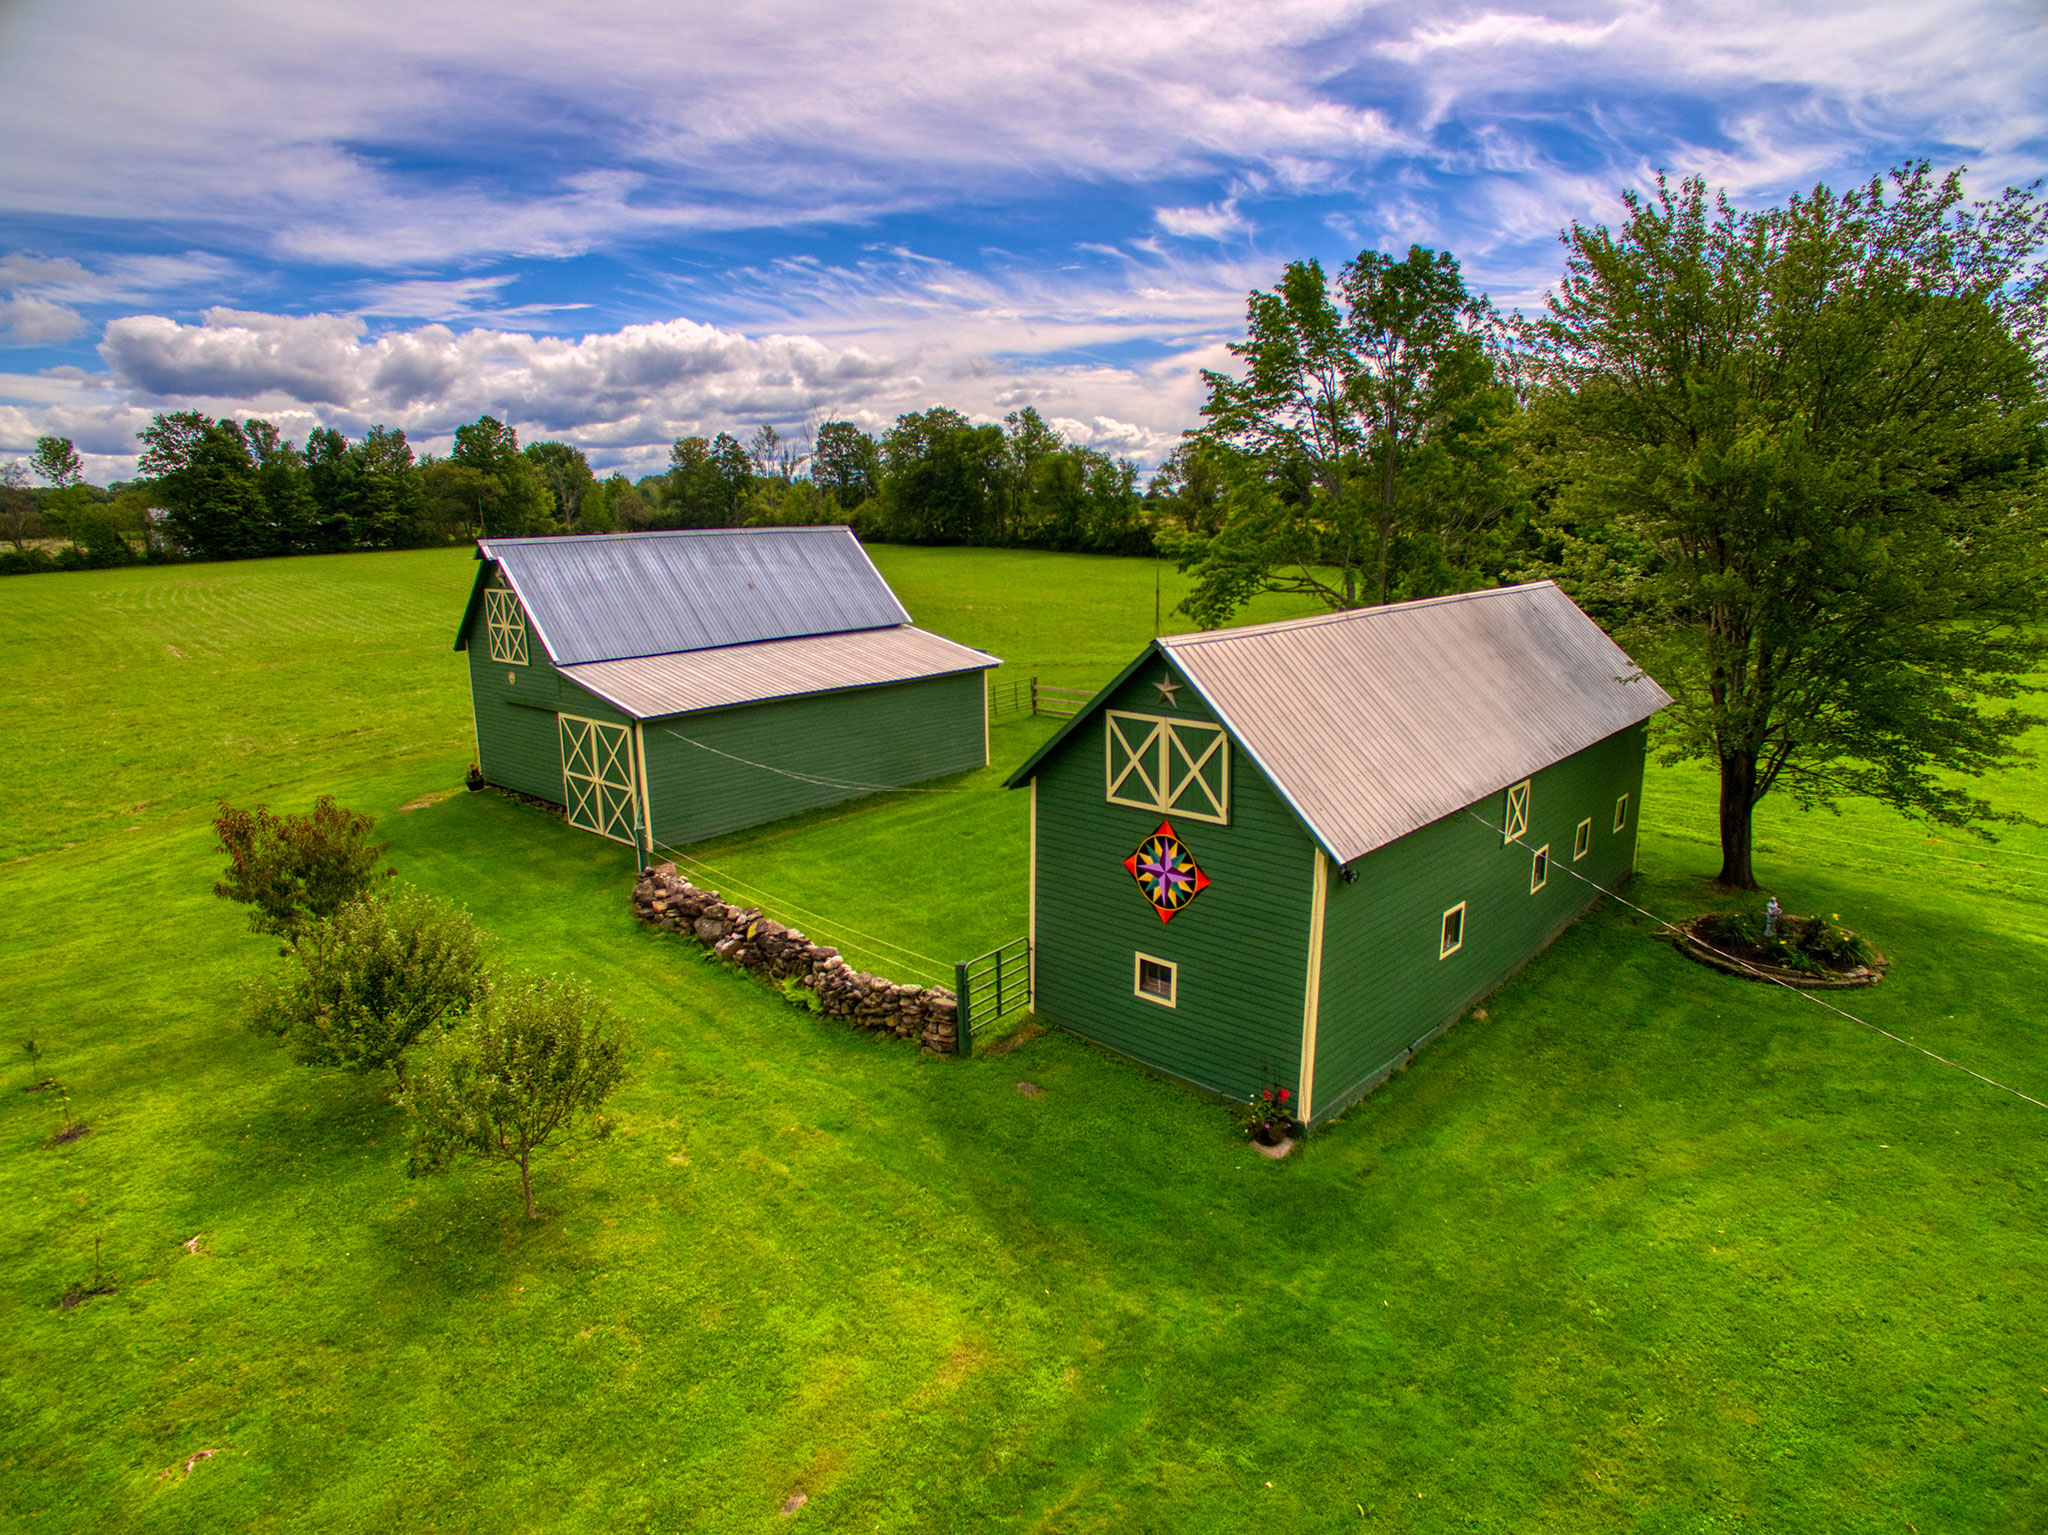 Aerial photo of two barns on property in Perth, New York.